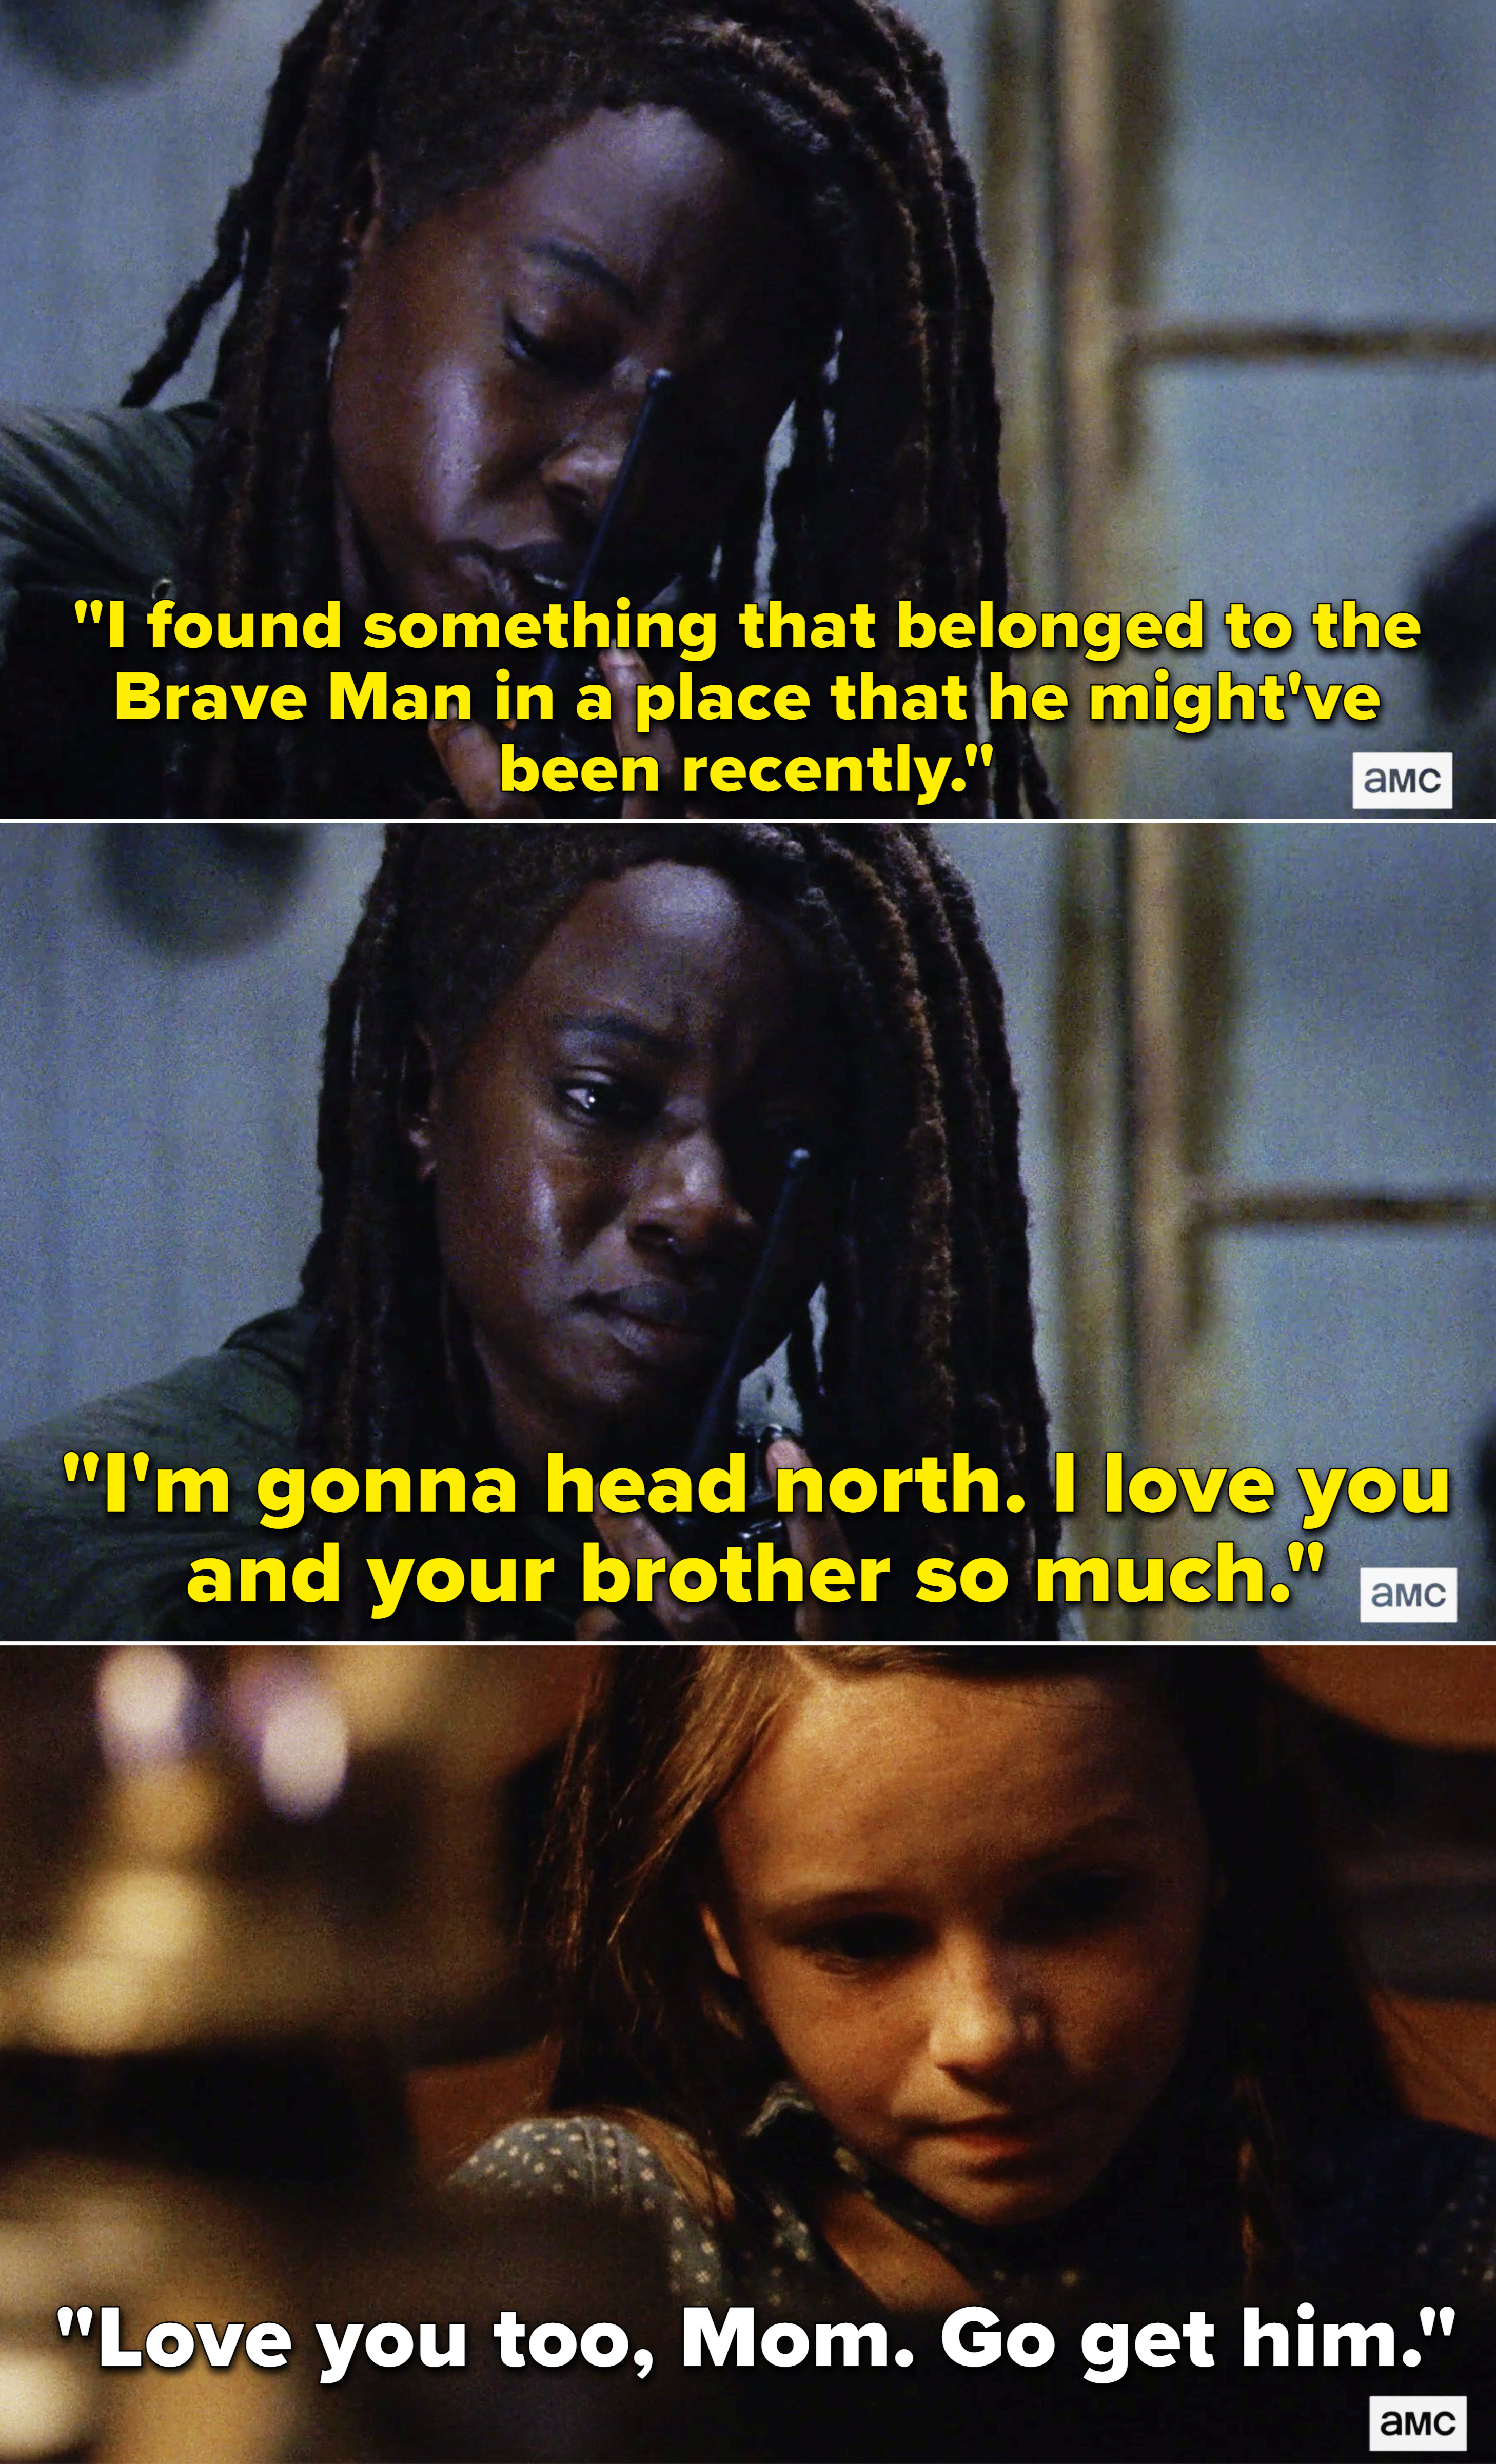 """Michonne radioing Judith and telling her she found something that beloved to the """"Brave Man"""""""